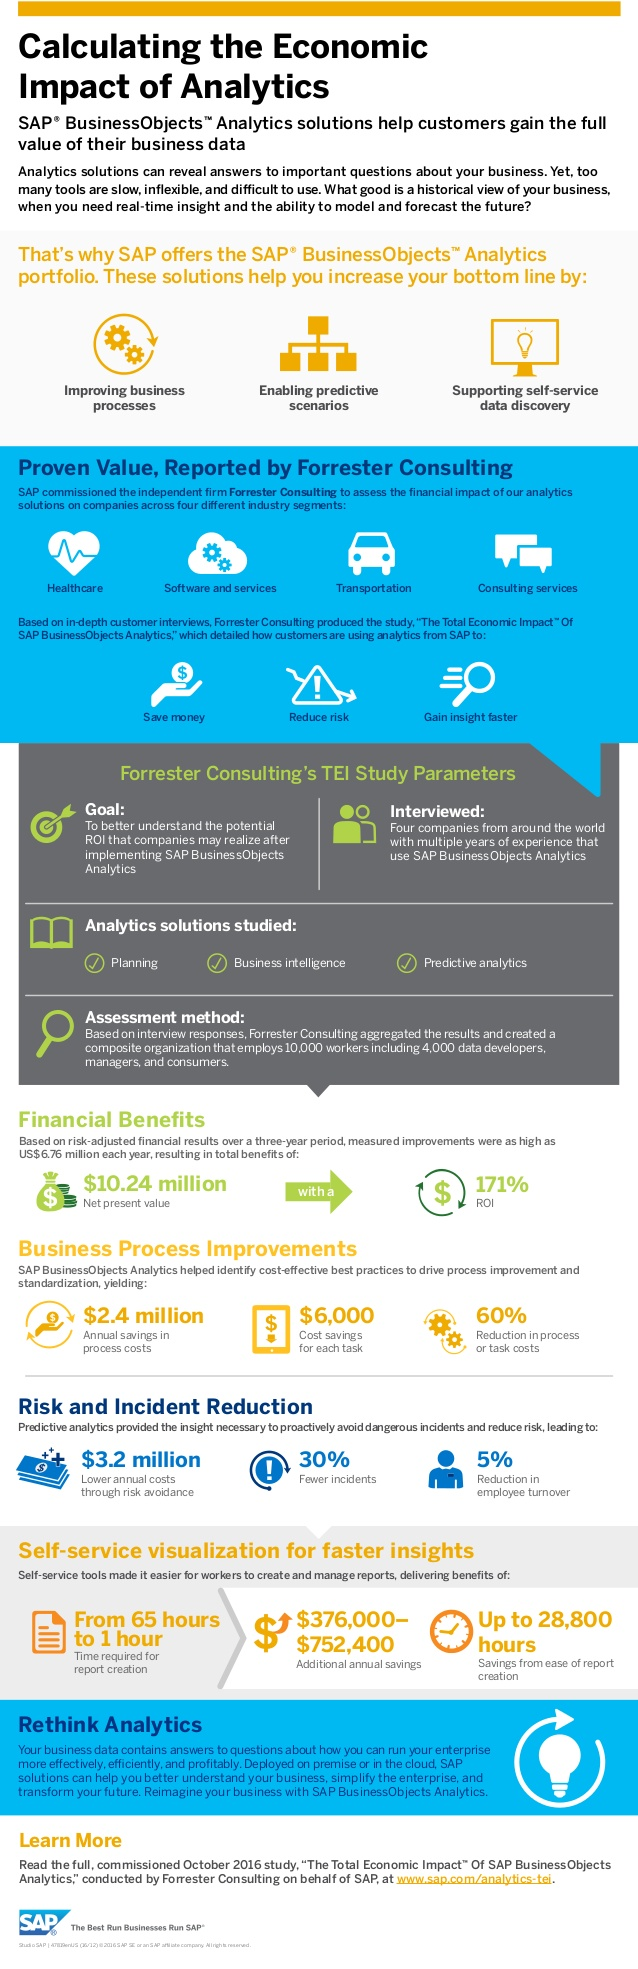 business-objects-analytics-ROI-infographic.png